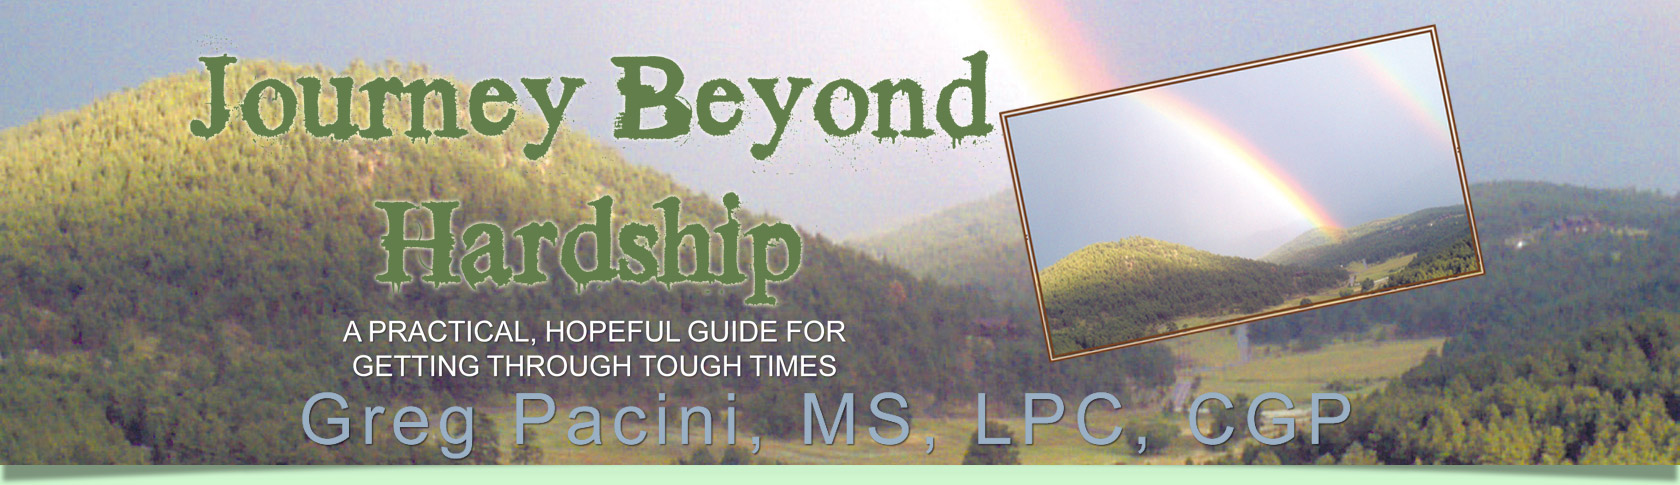 Journey Beyond Hardship by Greg Pacini, MS, LPC, CGP